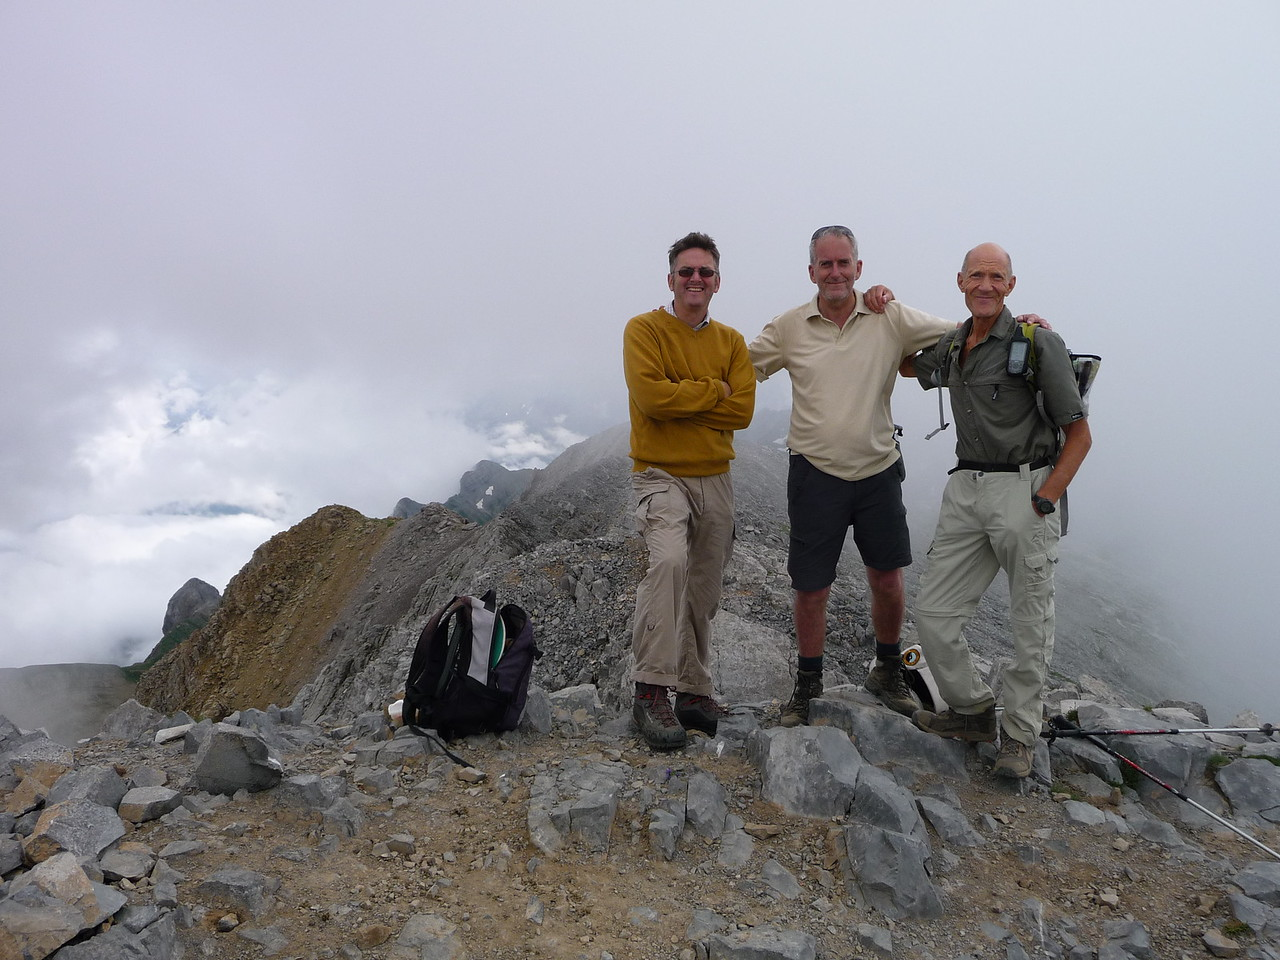 Gareth, Edward and Vic on the cloudy summit of Bisaurin 2668m